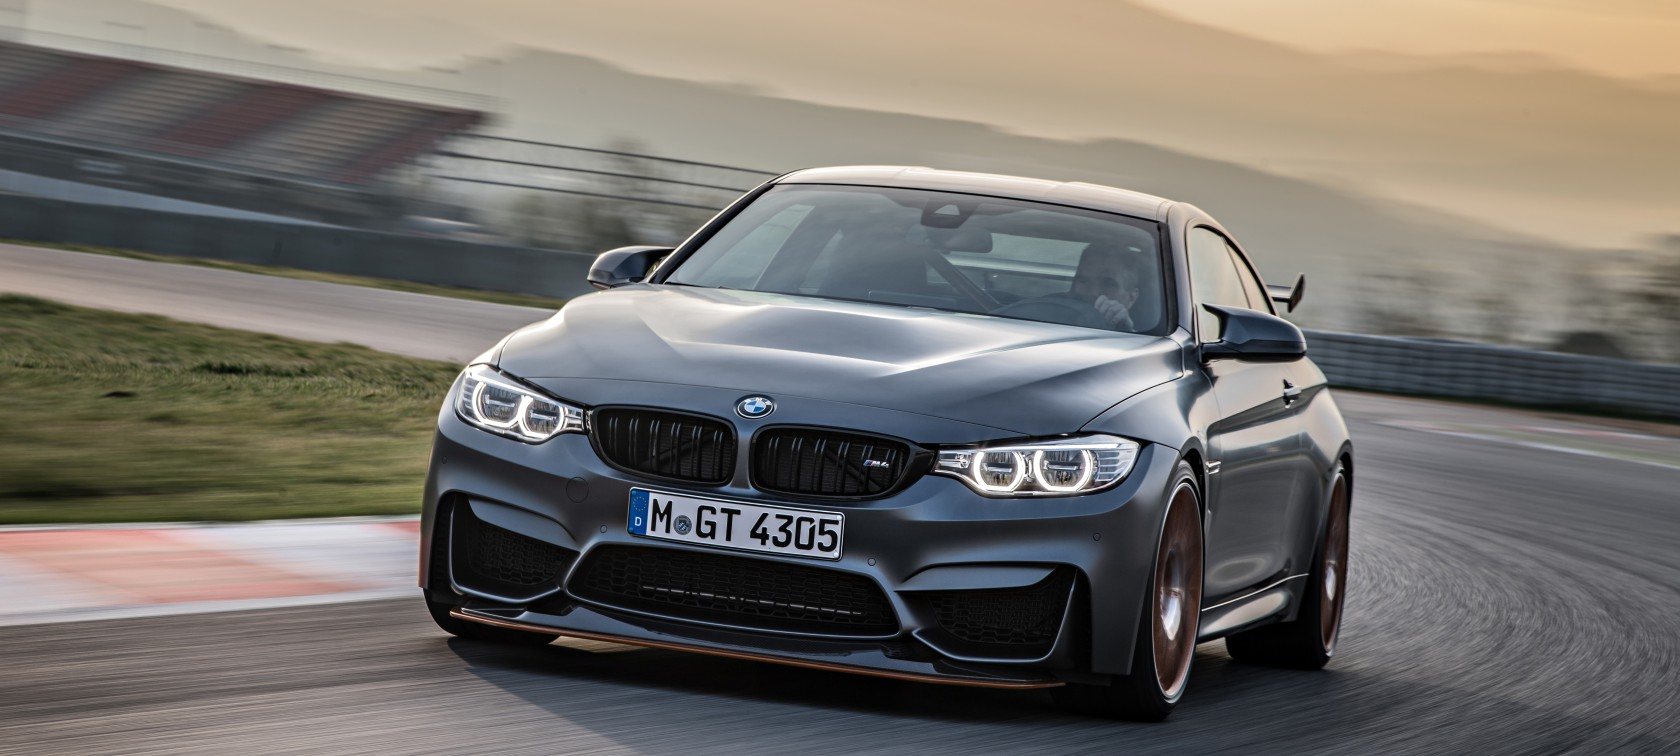 Driving BMW M4 GTS on racetrack with mountain range in the background